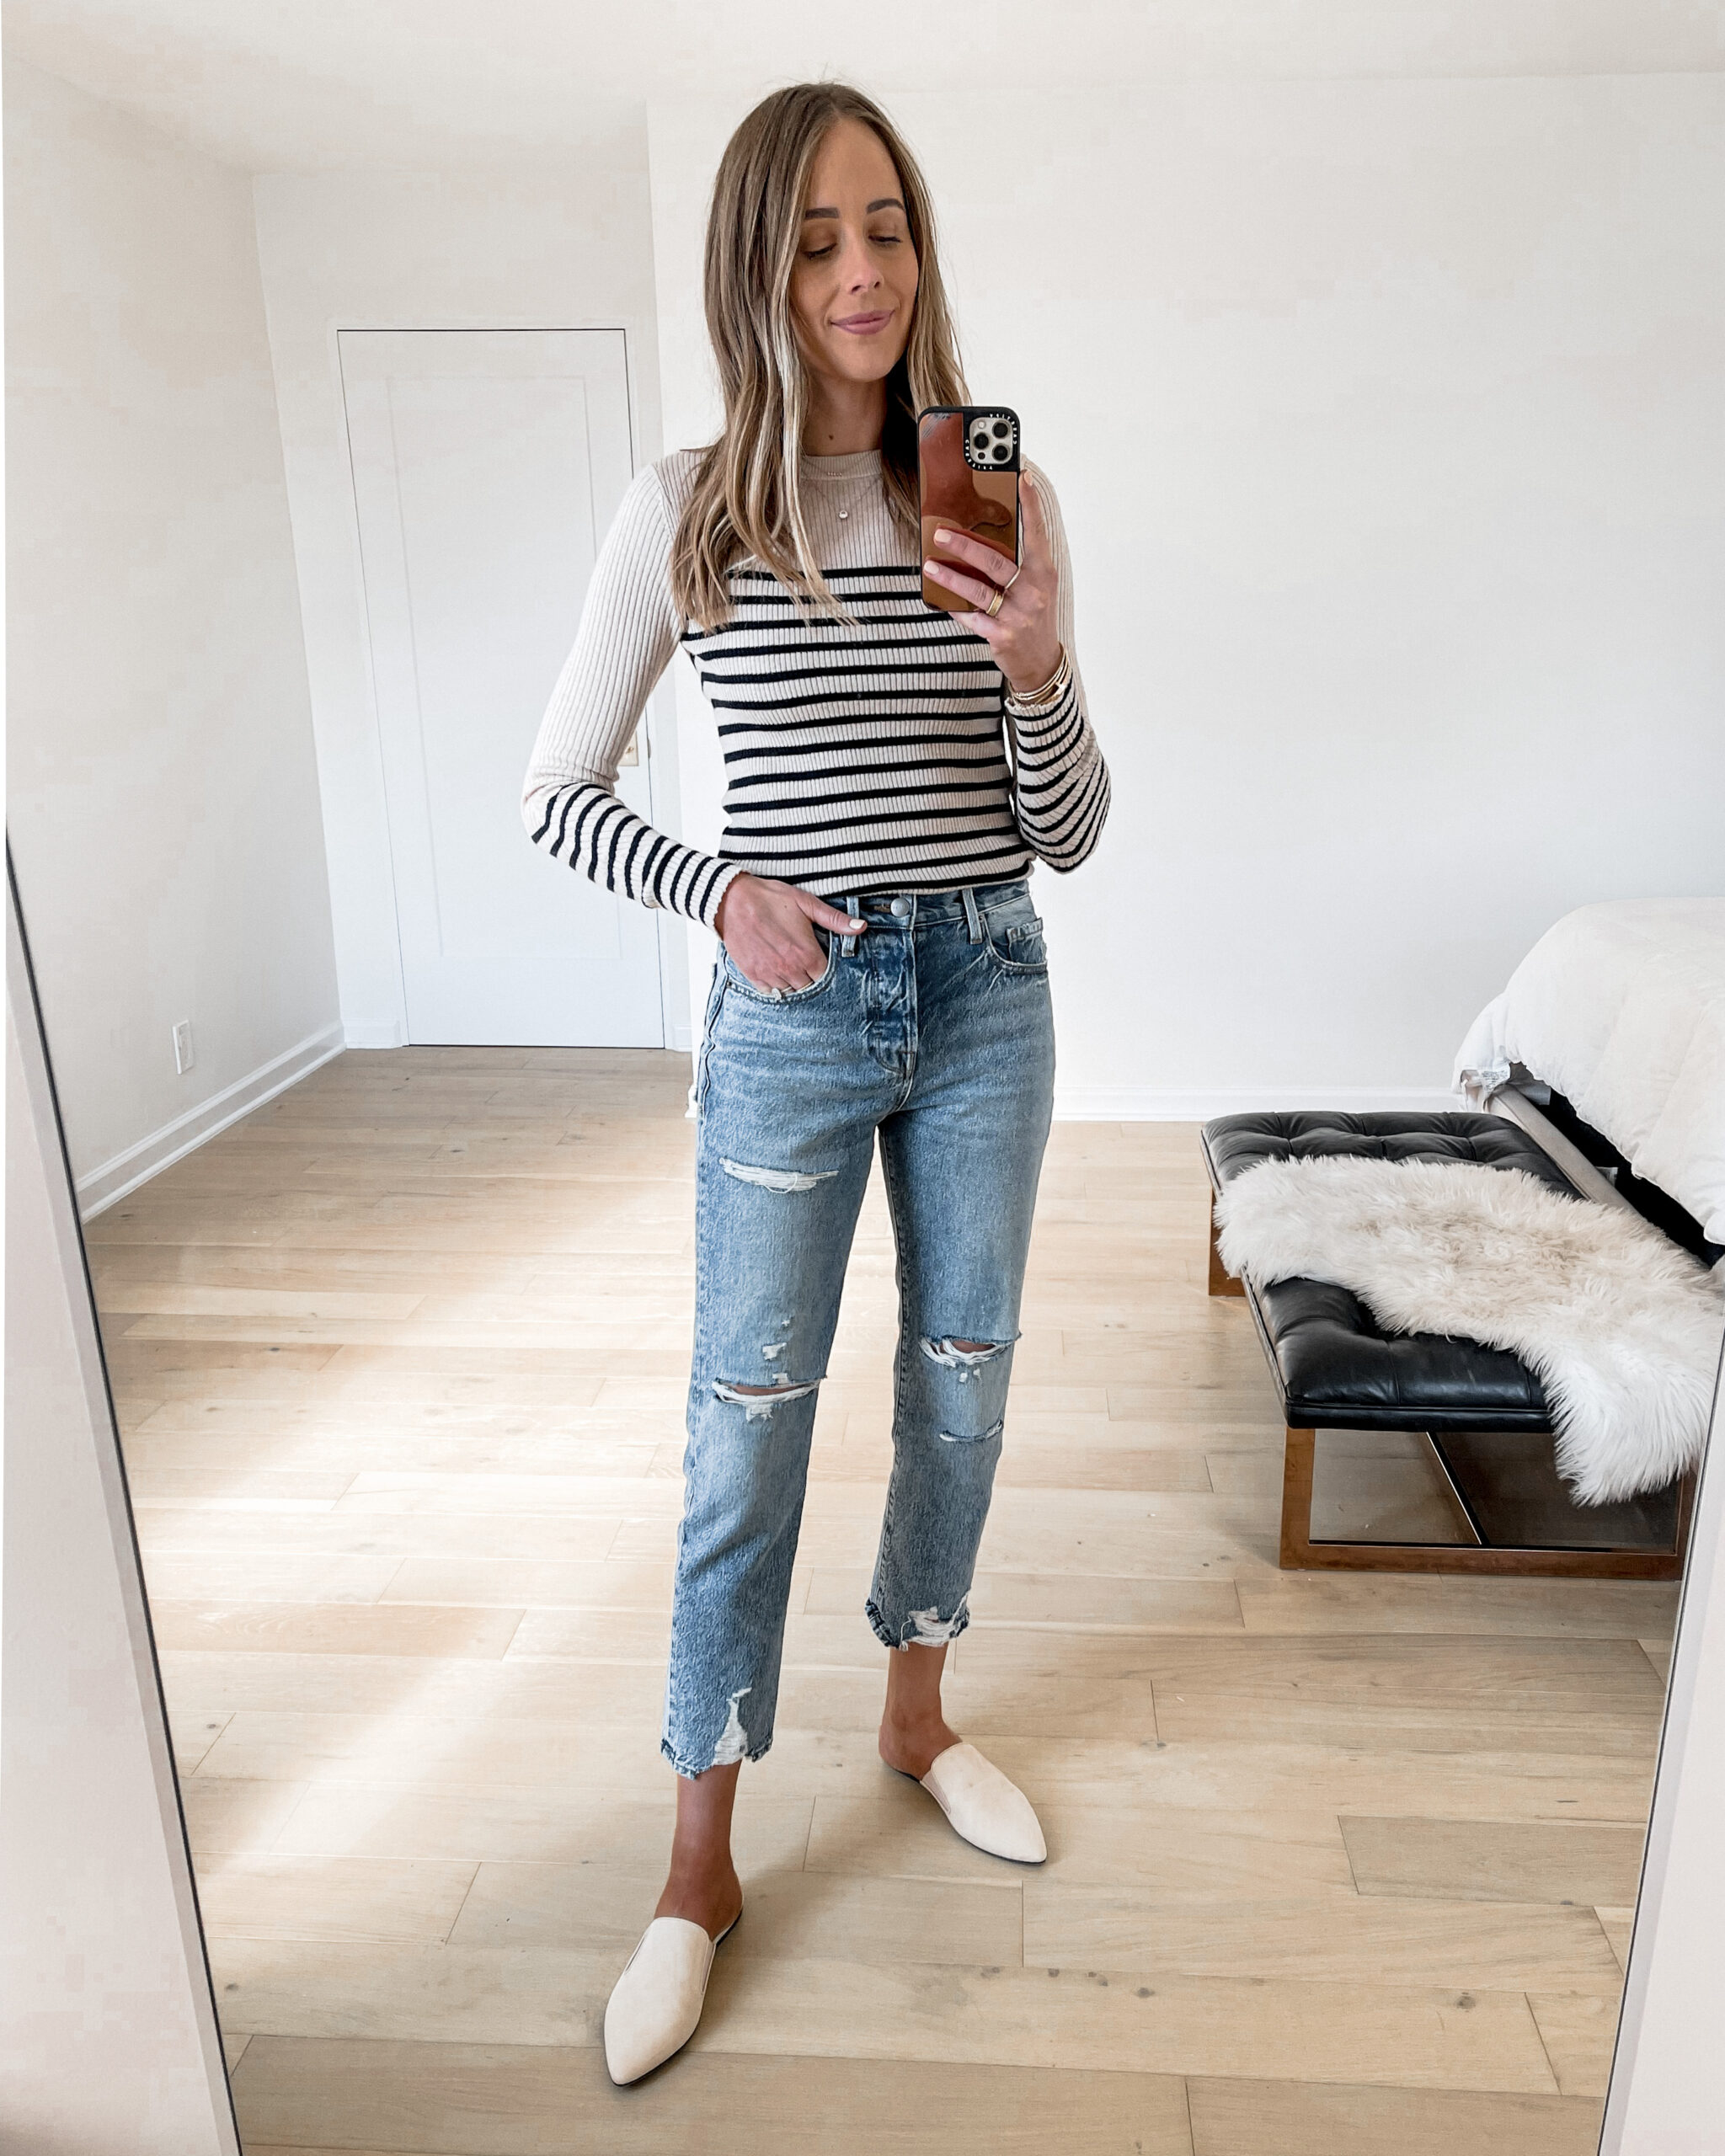 Fashion Jackson Wearing Rag & Bone Stripe Top Frame Ripped Jeans Jenni Kayne Leather Mules